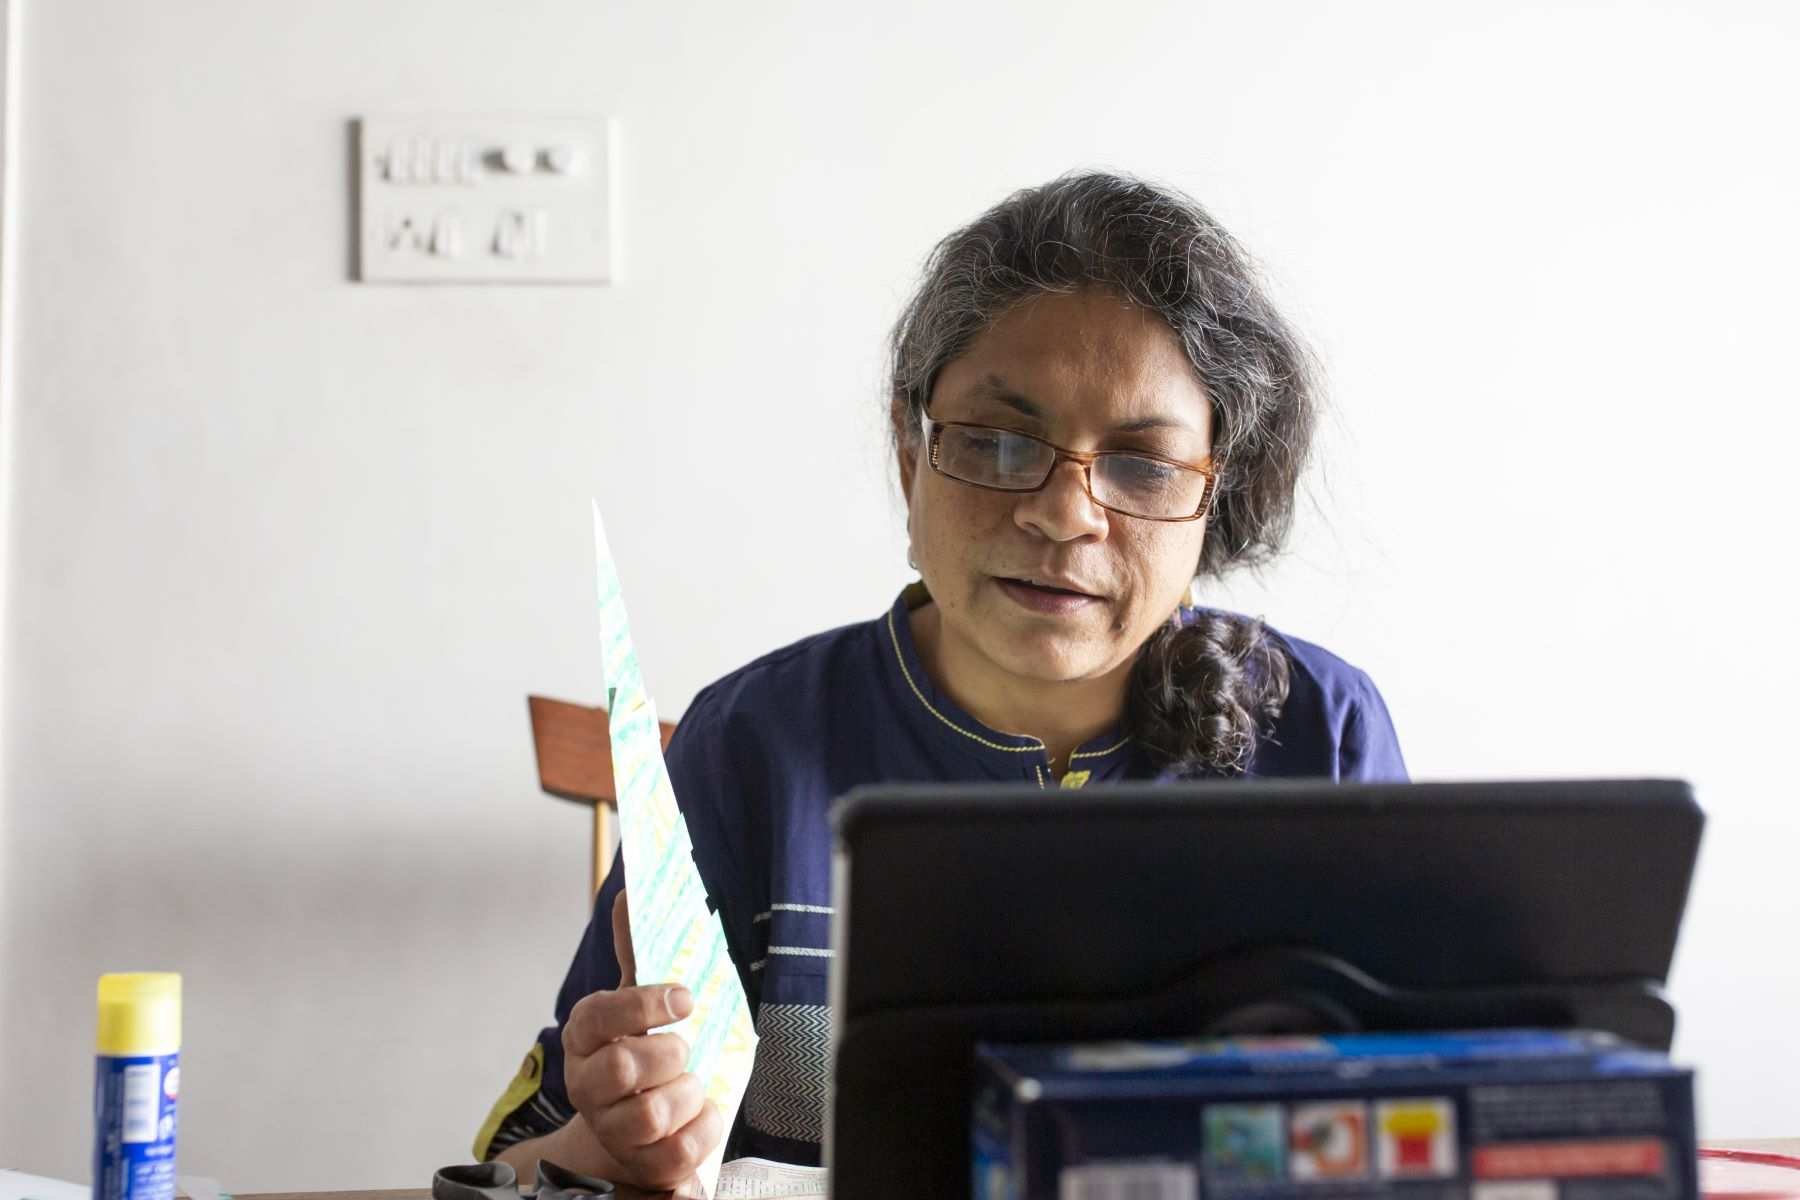 Jyotsna Srinivasan showing Madhav what needs to be done that day on a zoom call